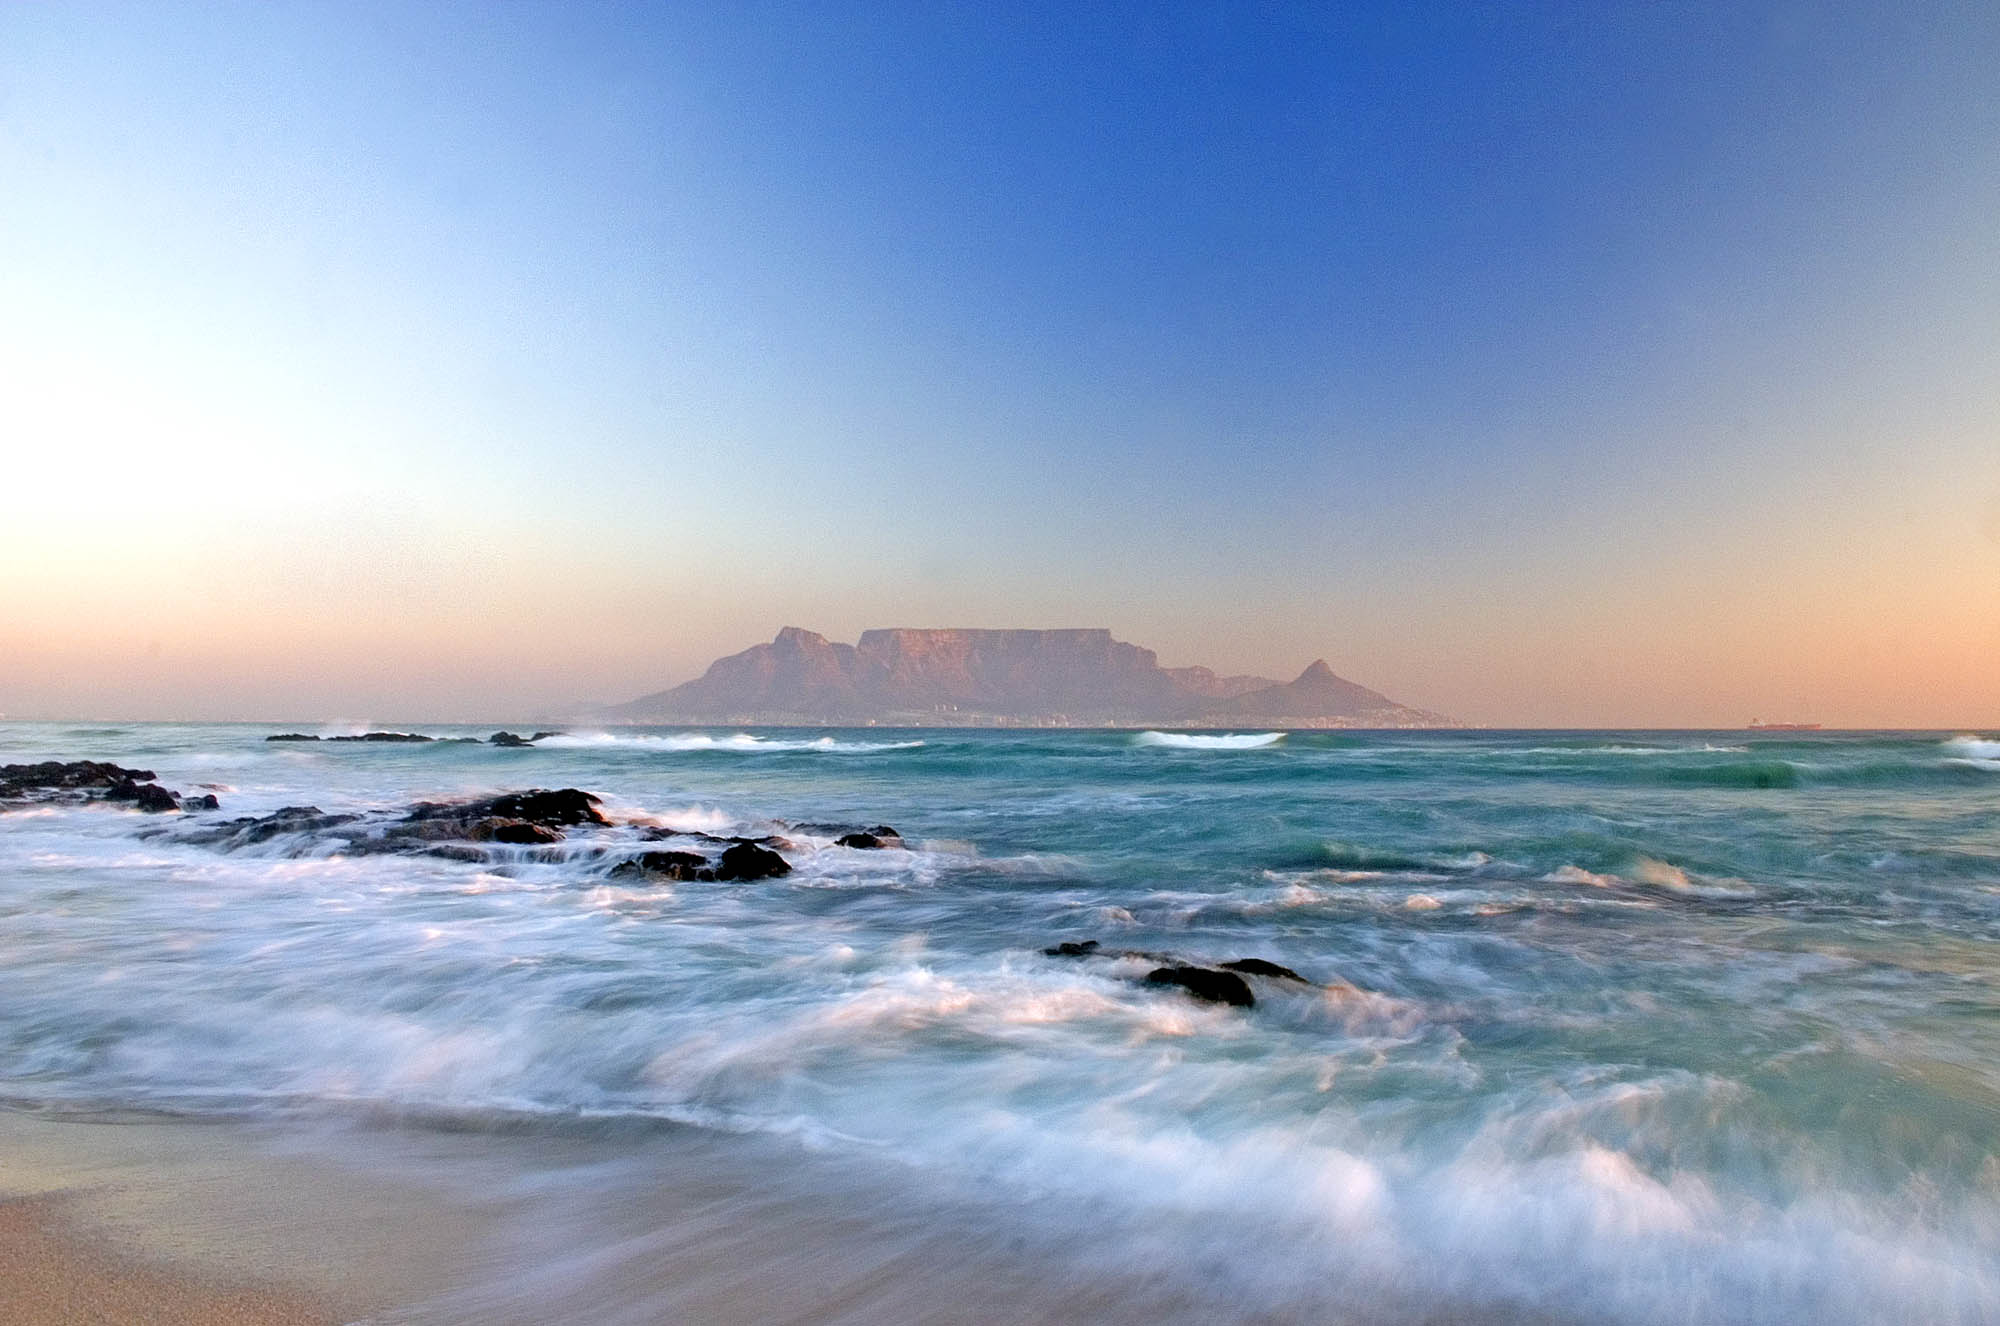 Wallpaper Desktop Table Mountain South Africa 1600 X 1066 334 Kb ...